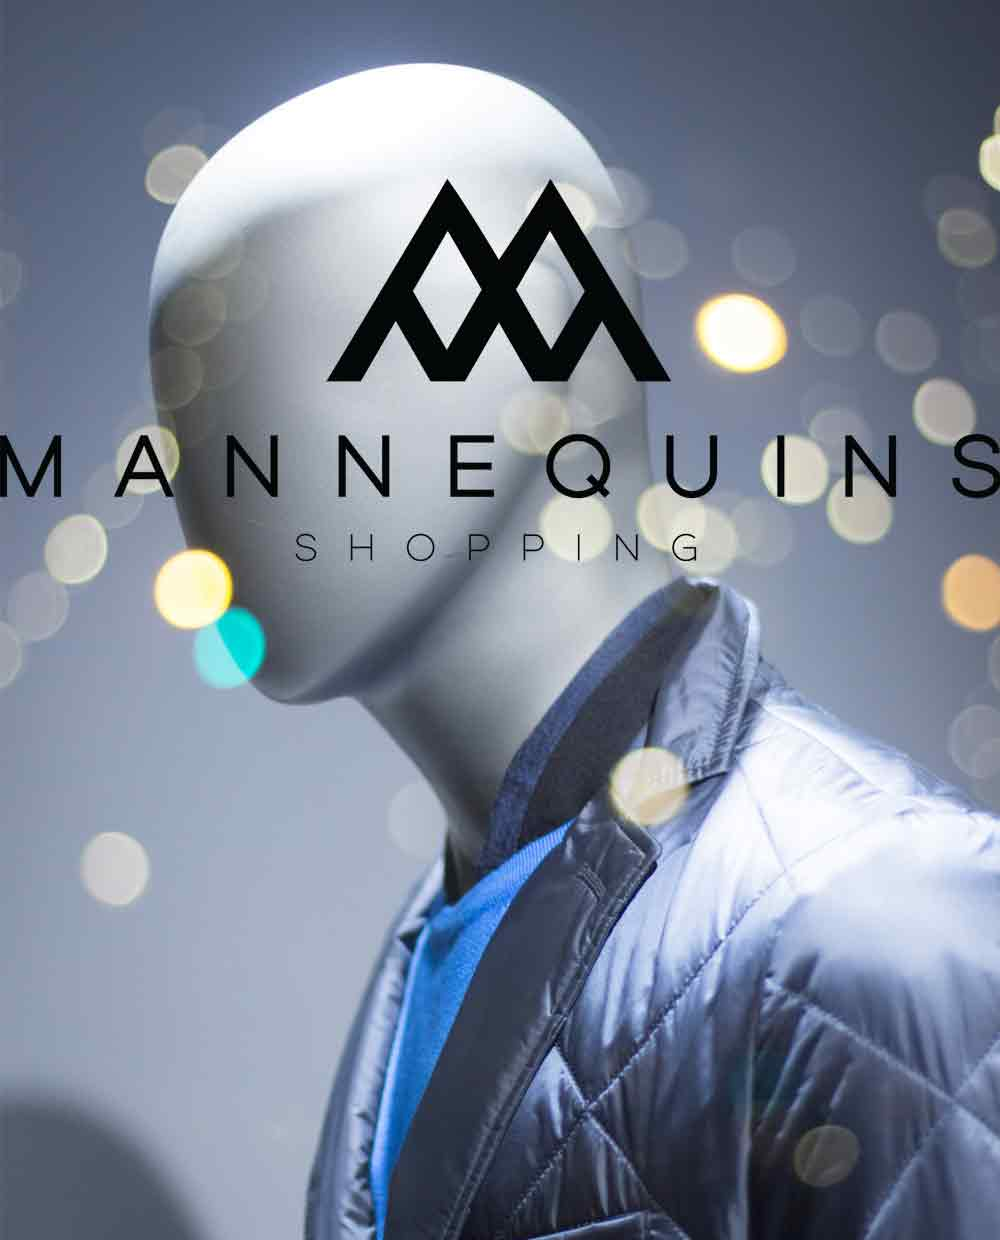 Mannequins Shopping